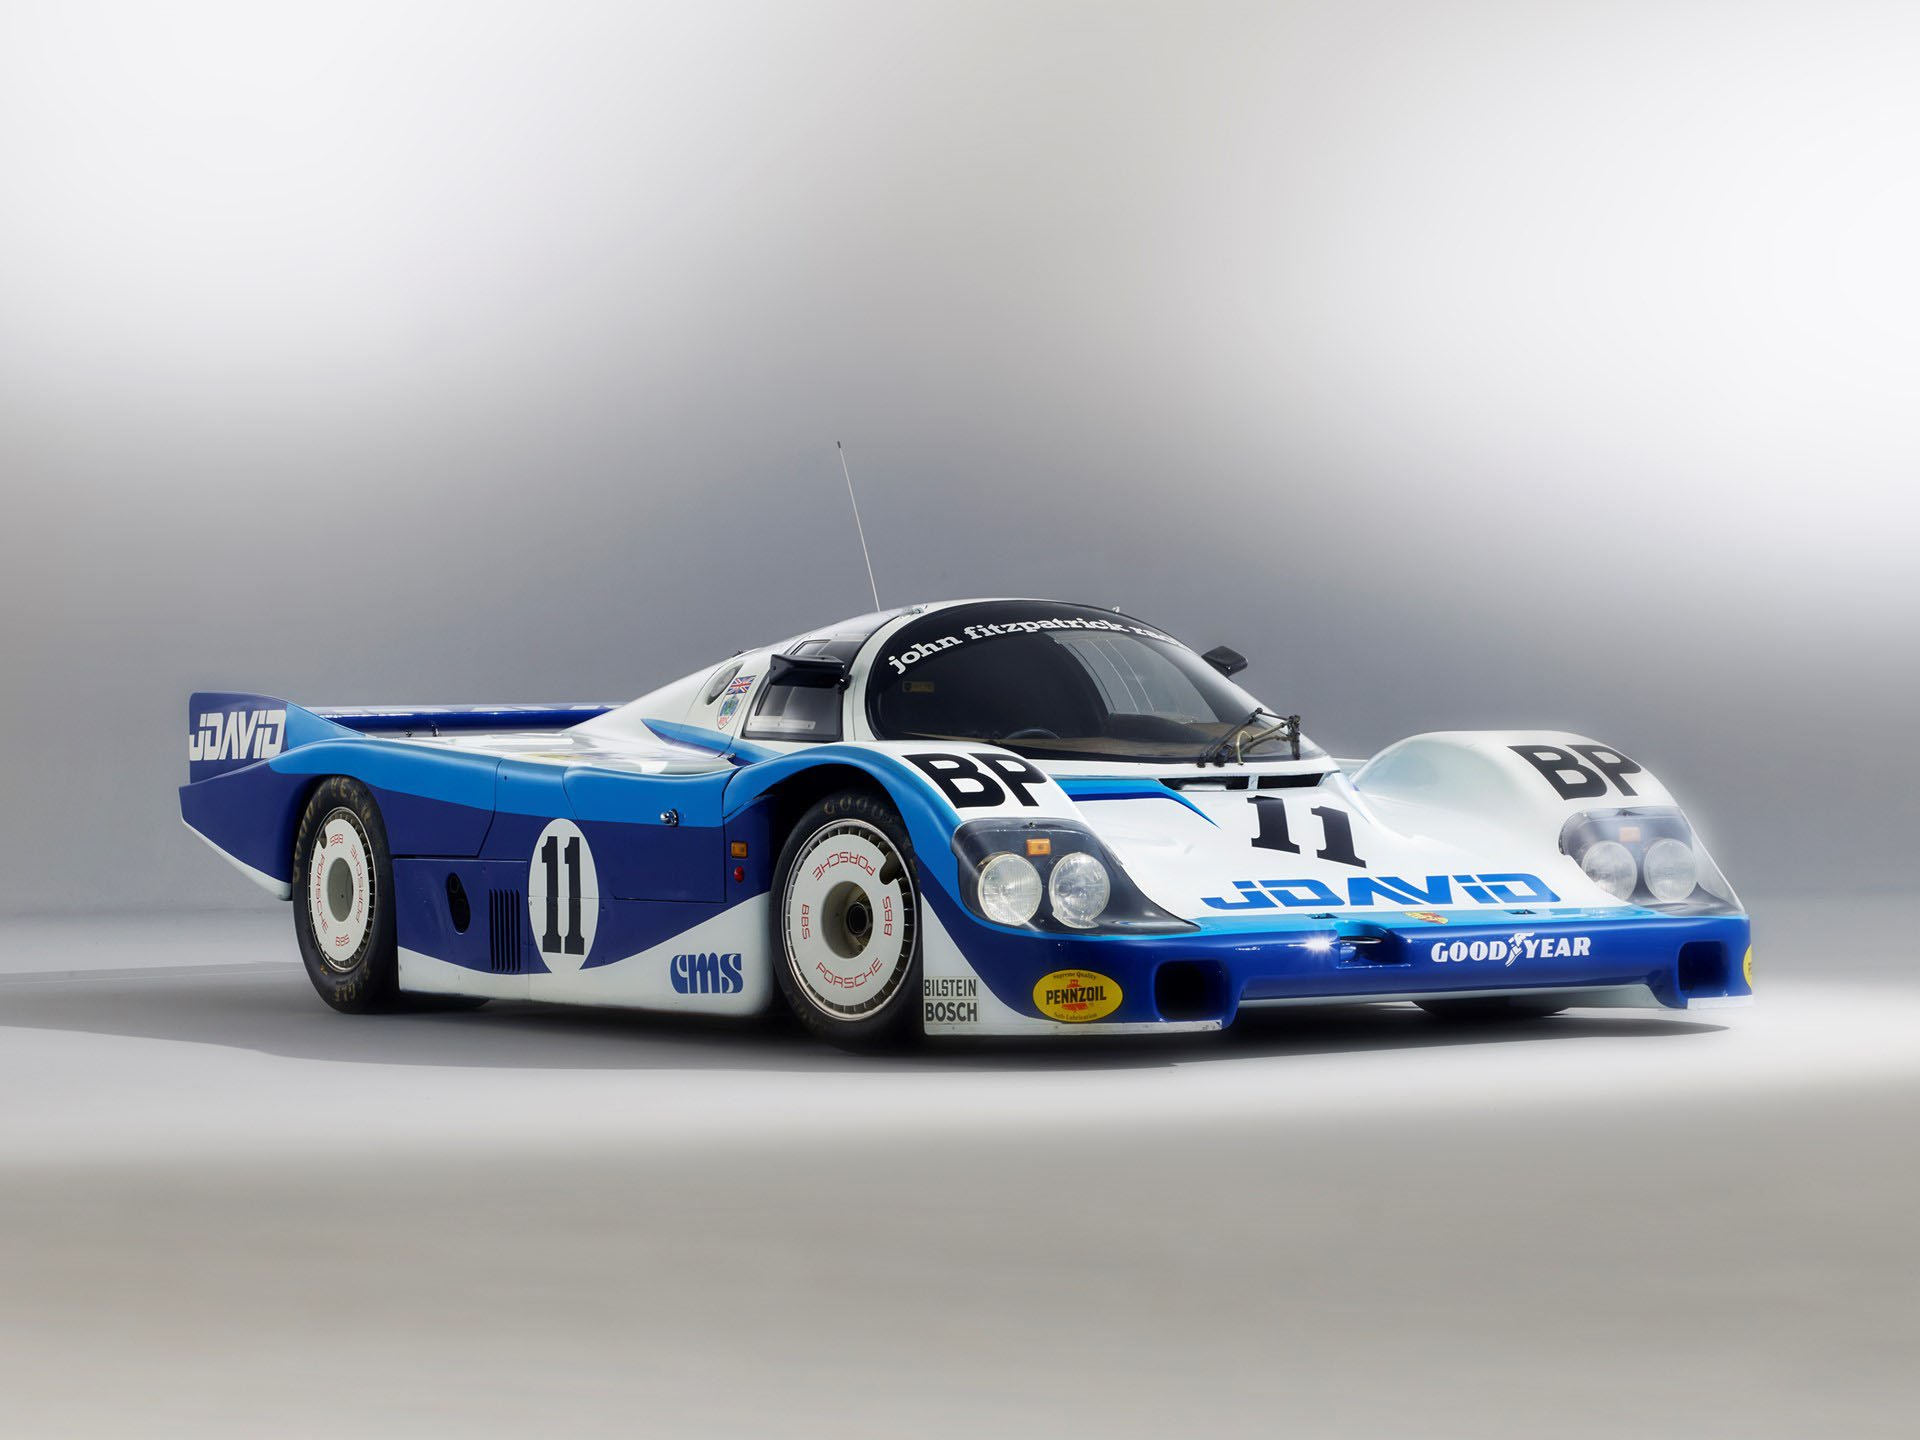 Porsche 956-110 in auction (1)